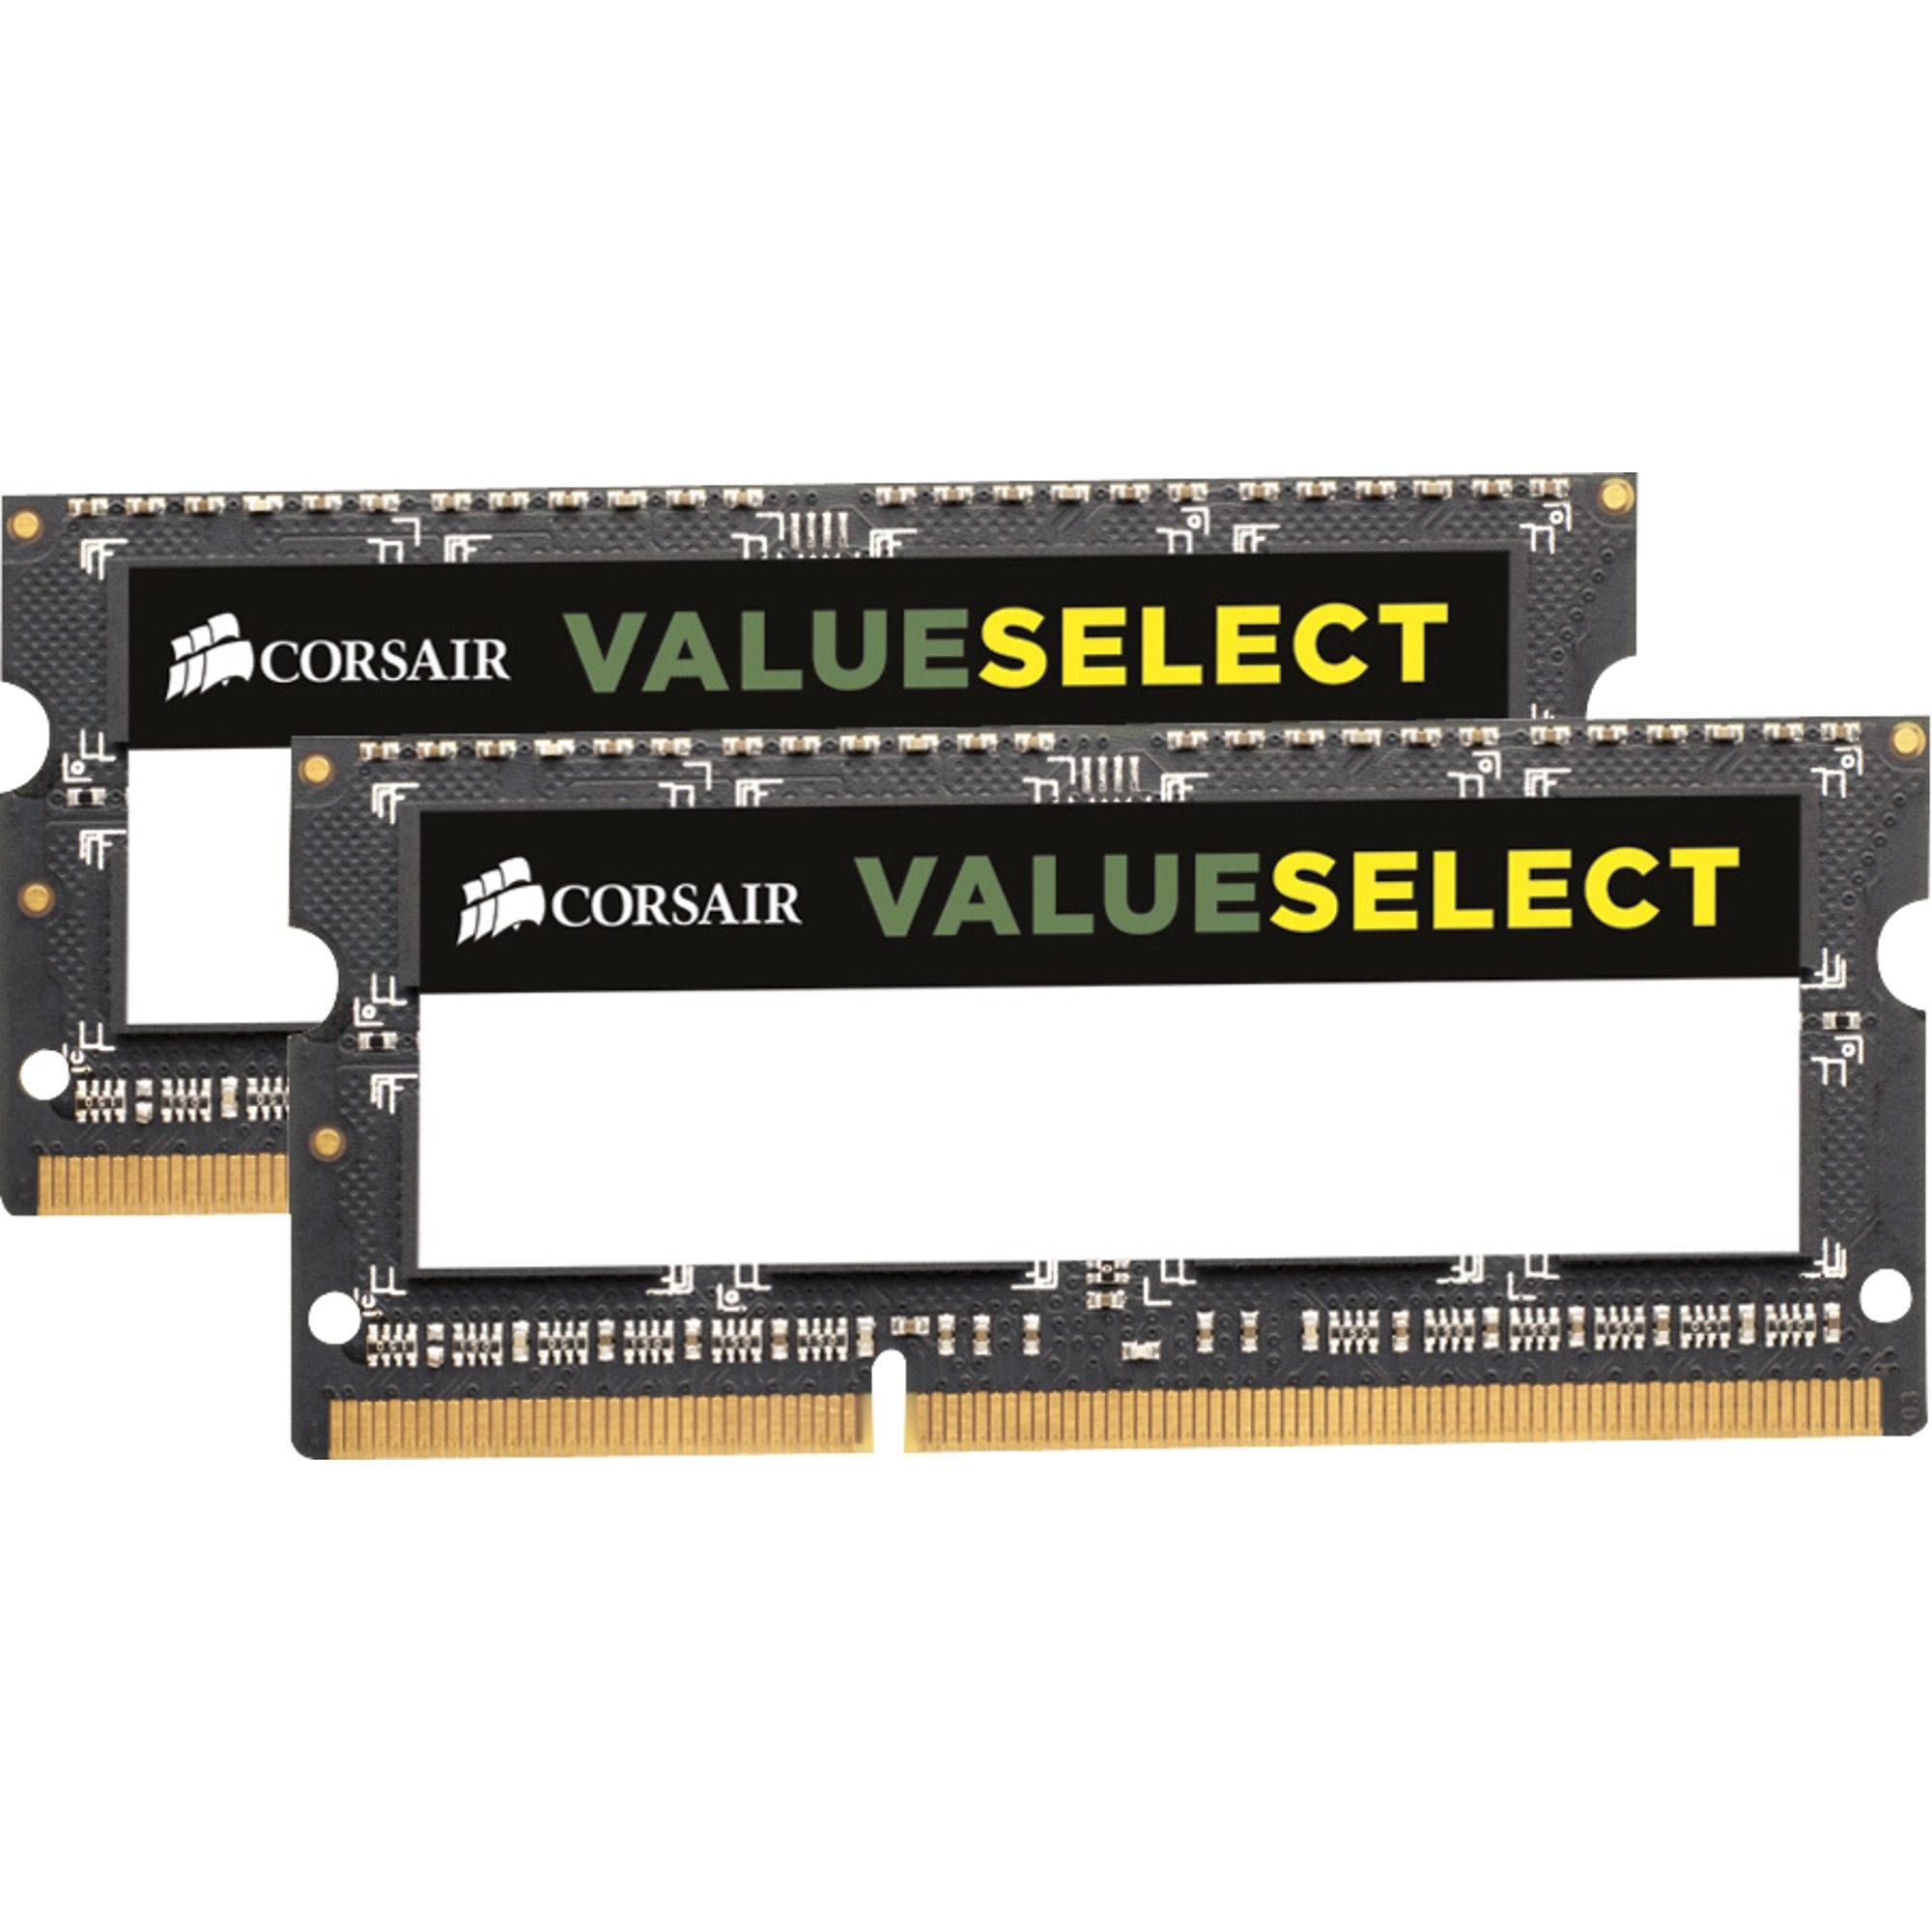 Corsair ValueSelect Arbeitsspeicher »SO-DIMM 16 GB DDR3-1600 Kit«